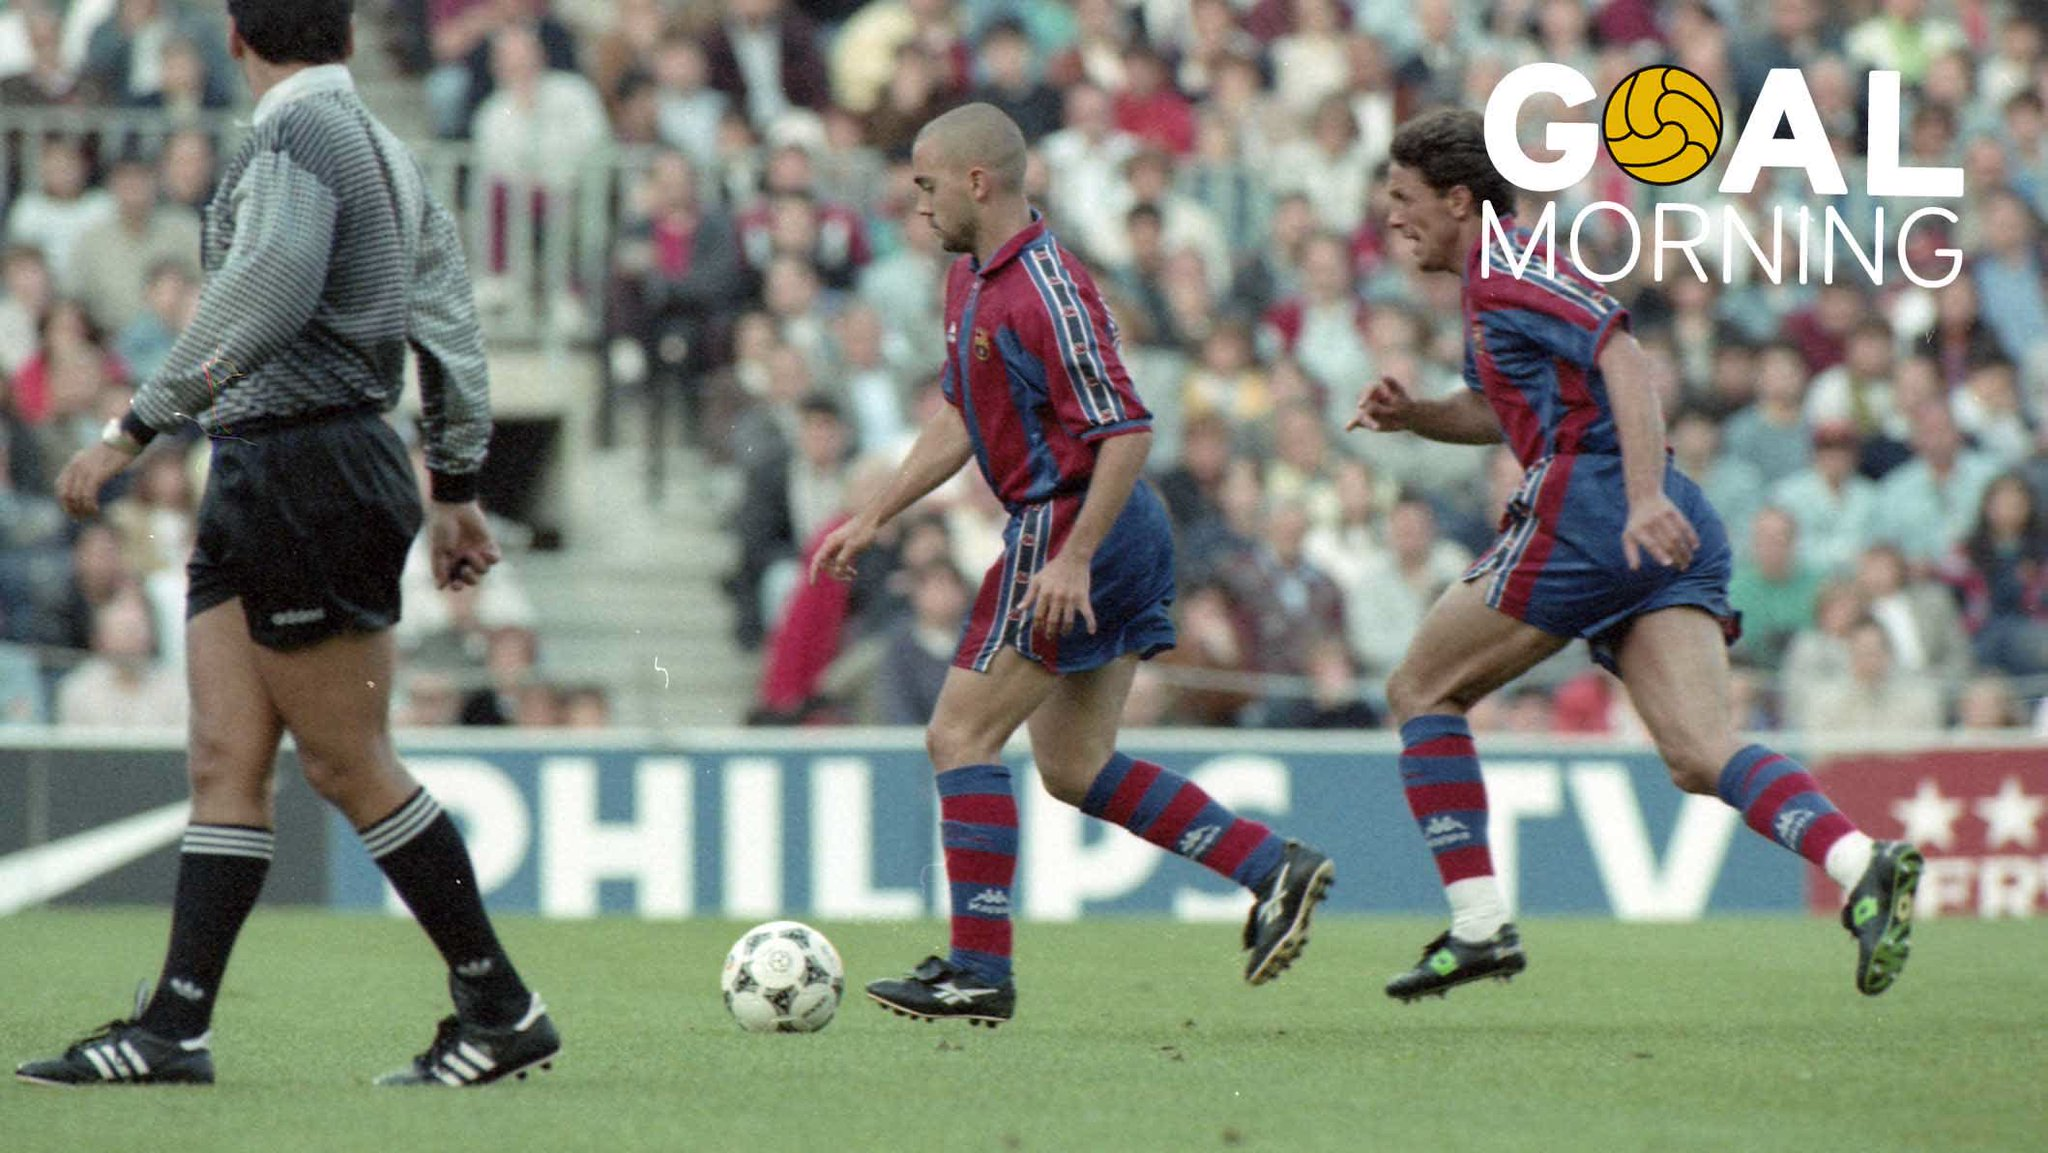 G⚽️AL MORNING!!!  Today marks 22 years since this Ivan de la Peña goal https://t.co/QU03IL7nJf